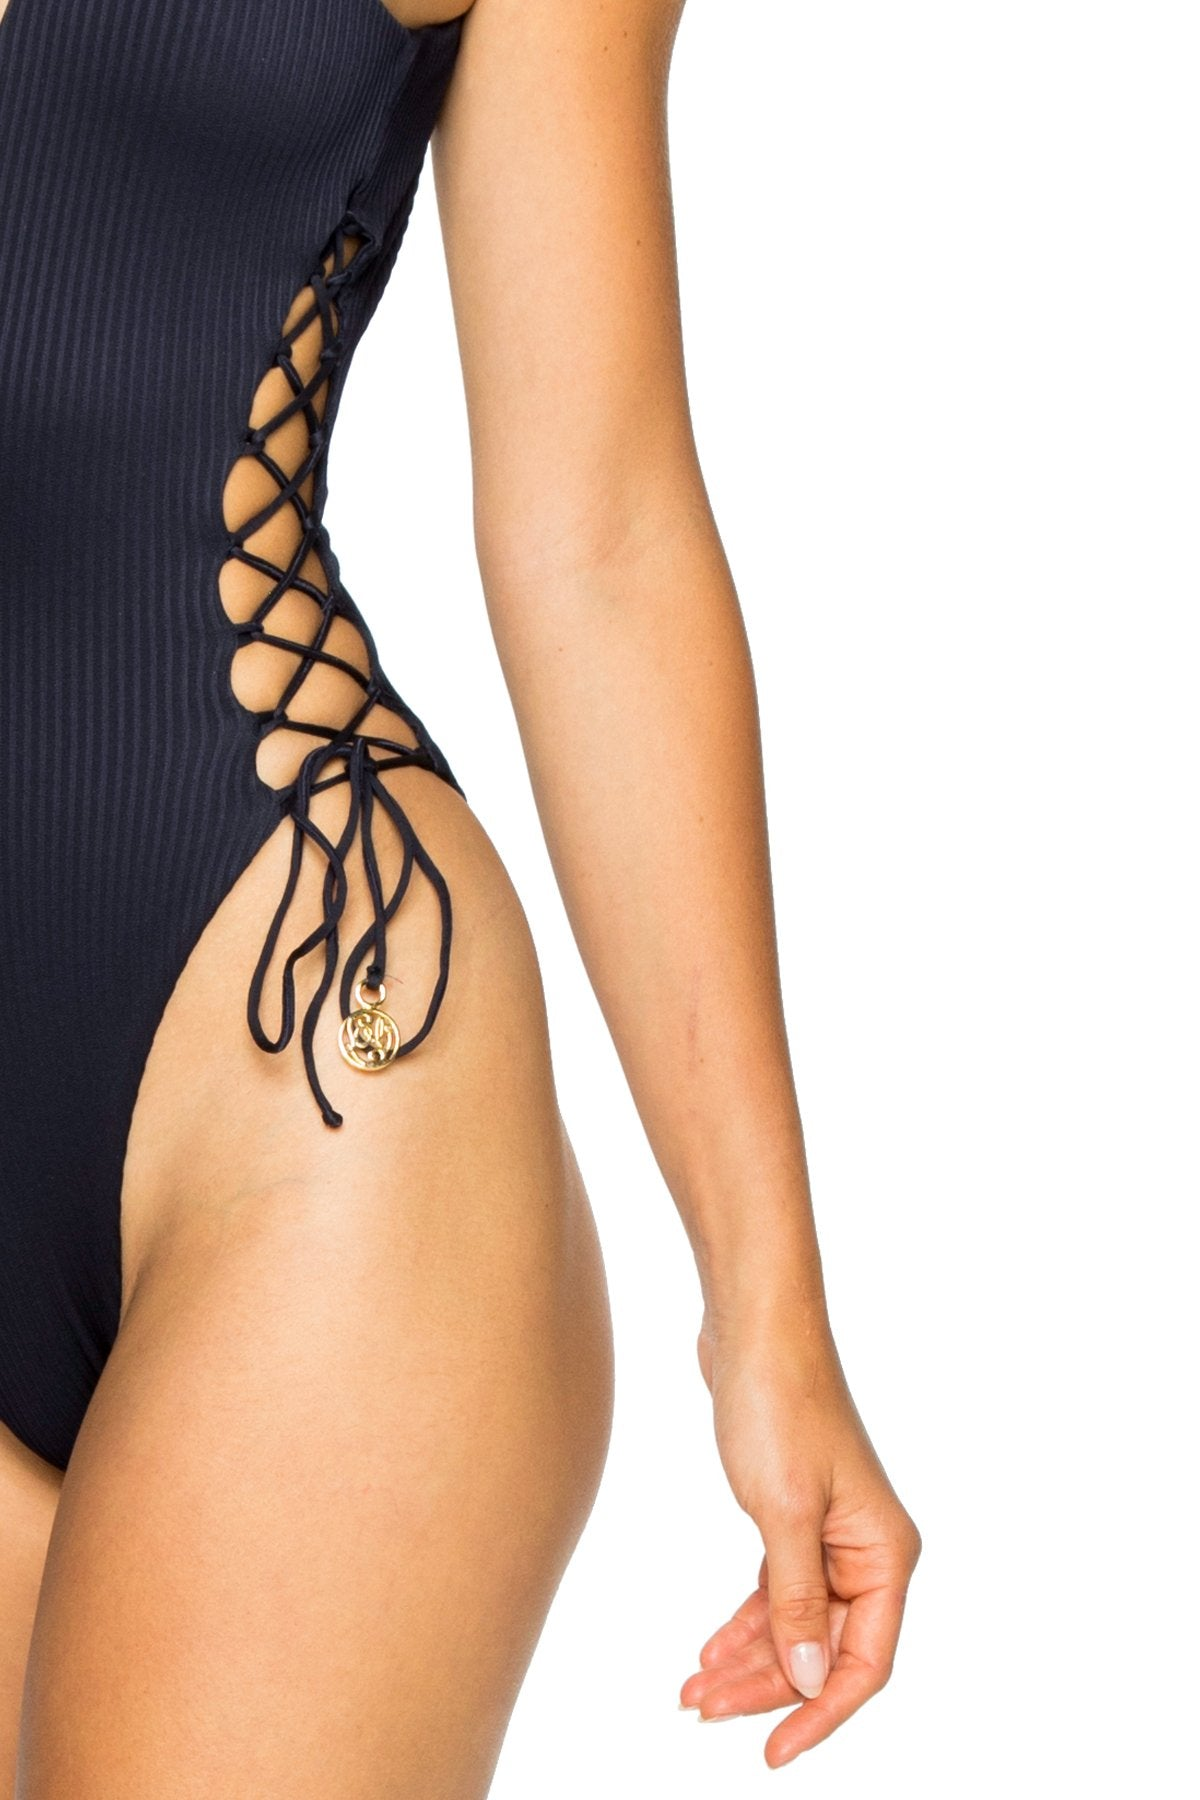 COSTA DEL SOL - Open Side One Piece Bodysuit • Mar De Gibraltar